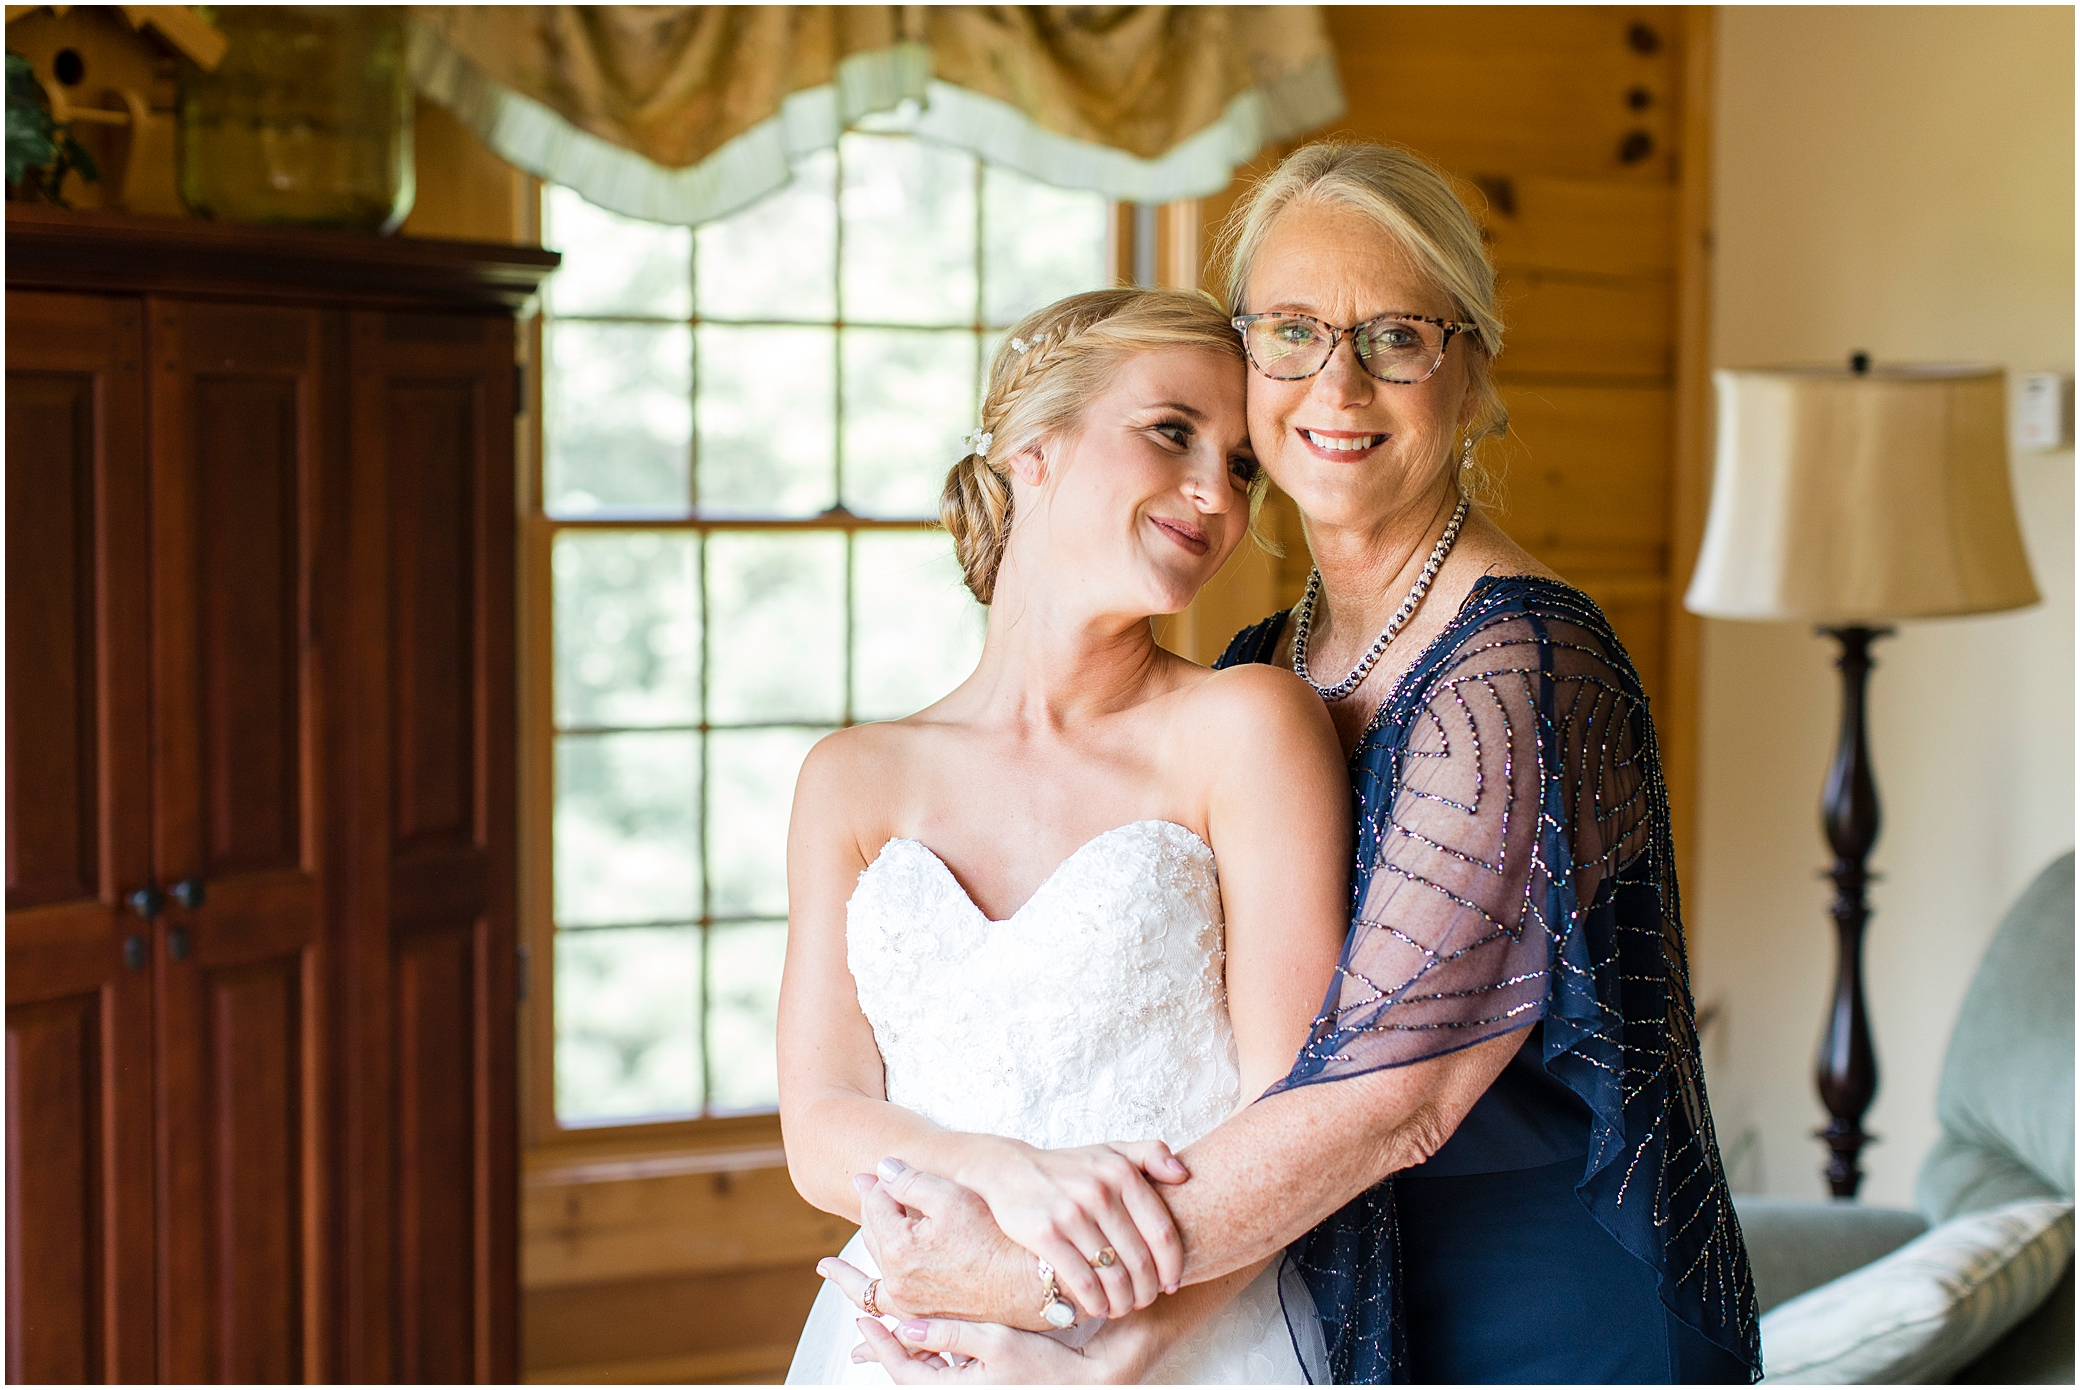 House Mountain Inn Wedding, Virginia wedding in the mountains, candid moment with bride and her mom